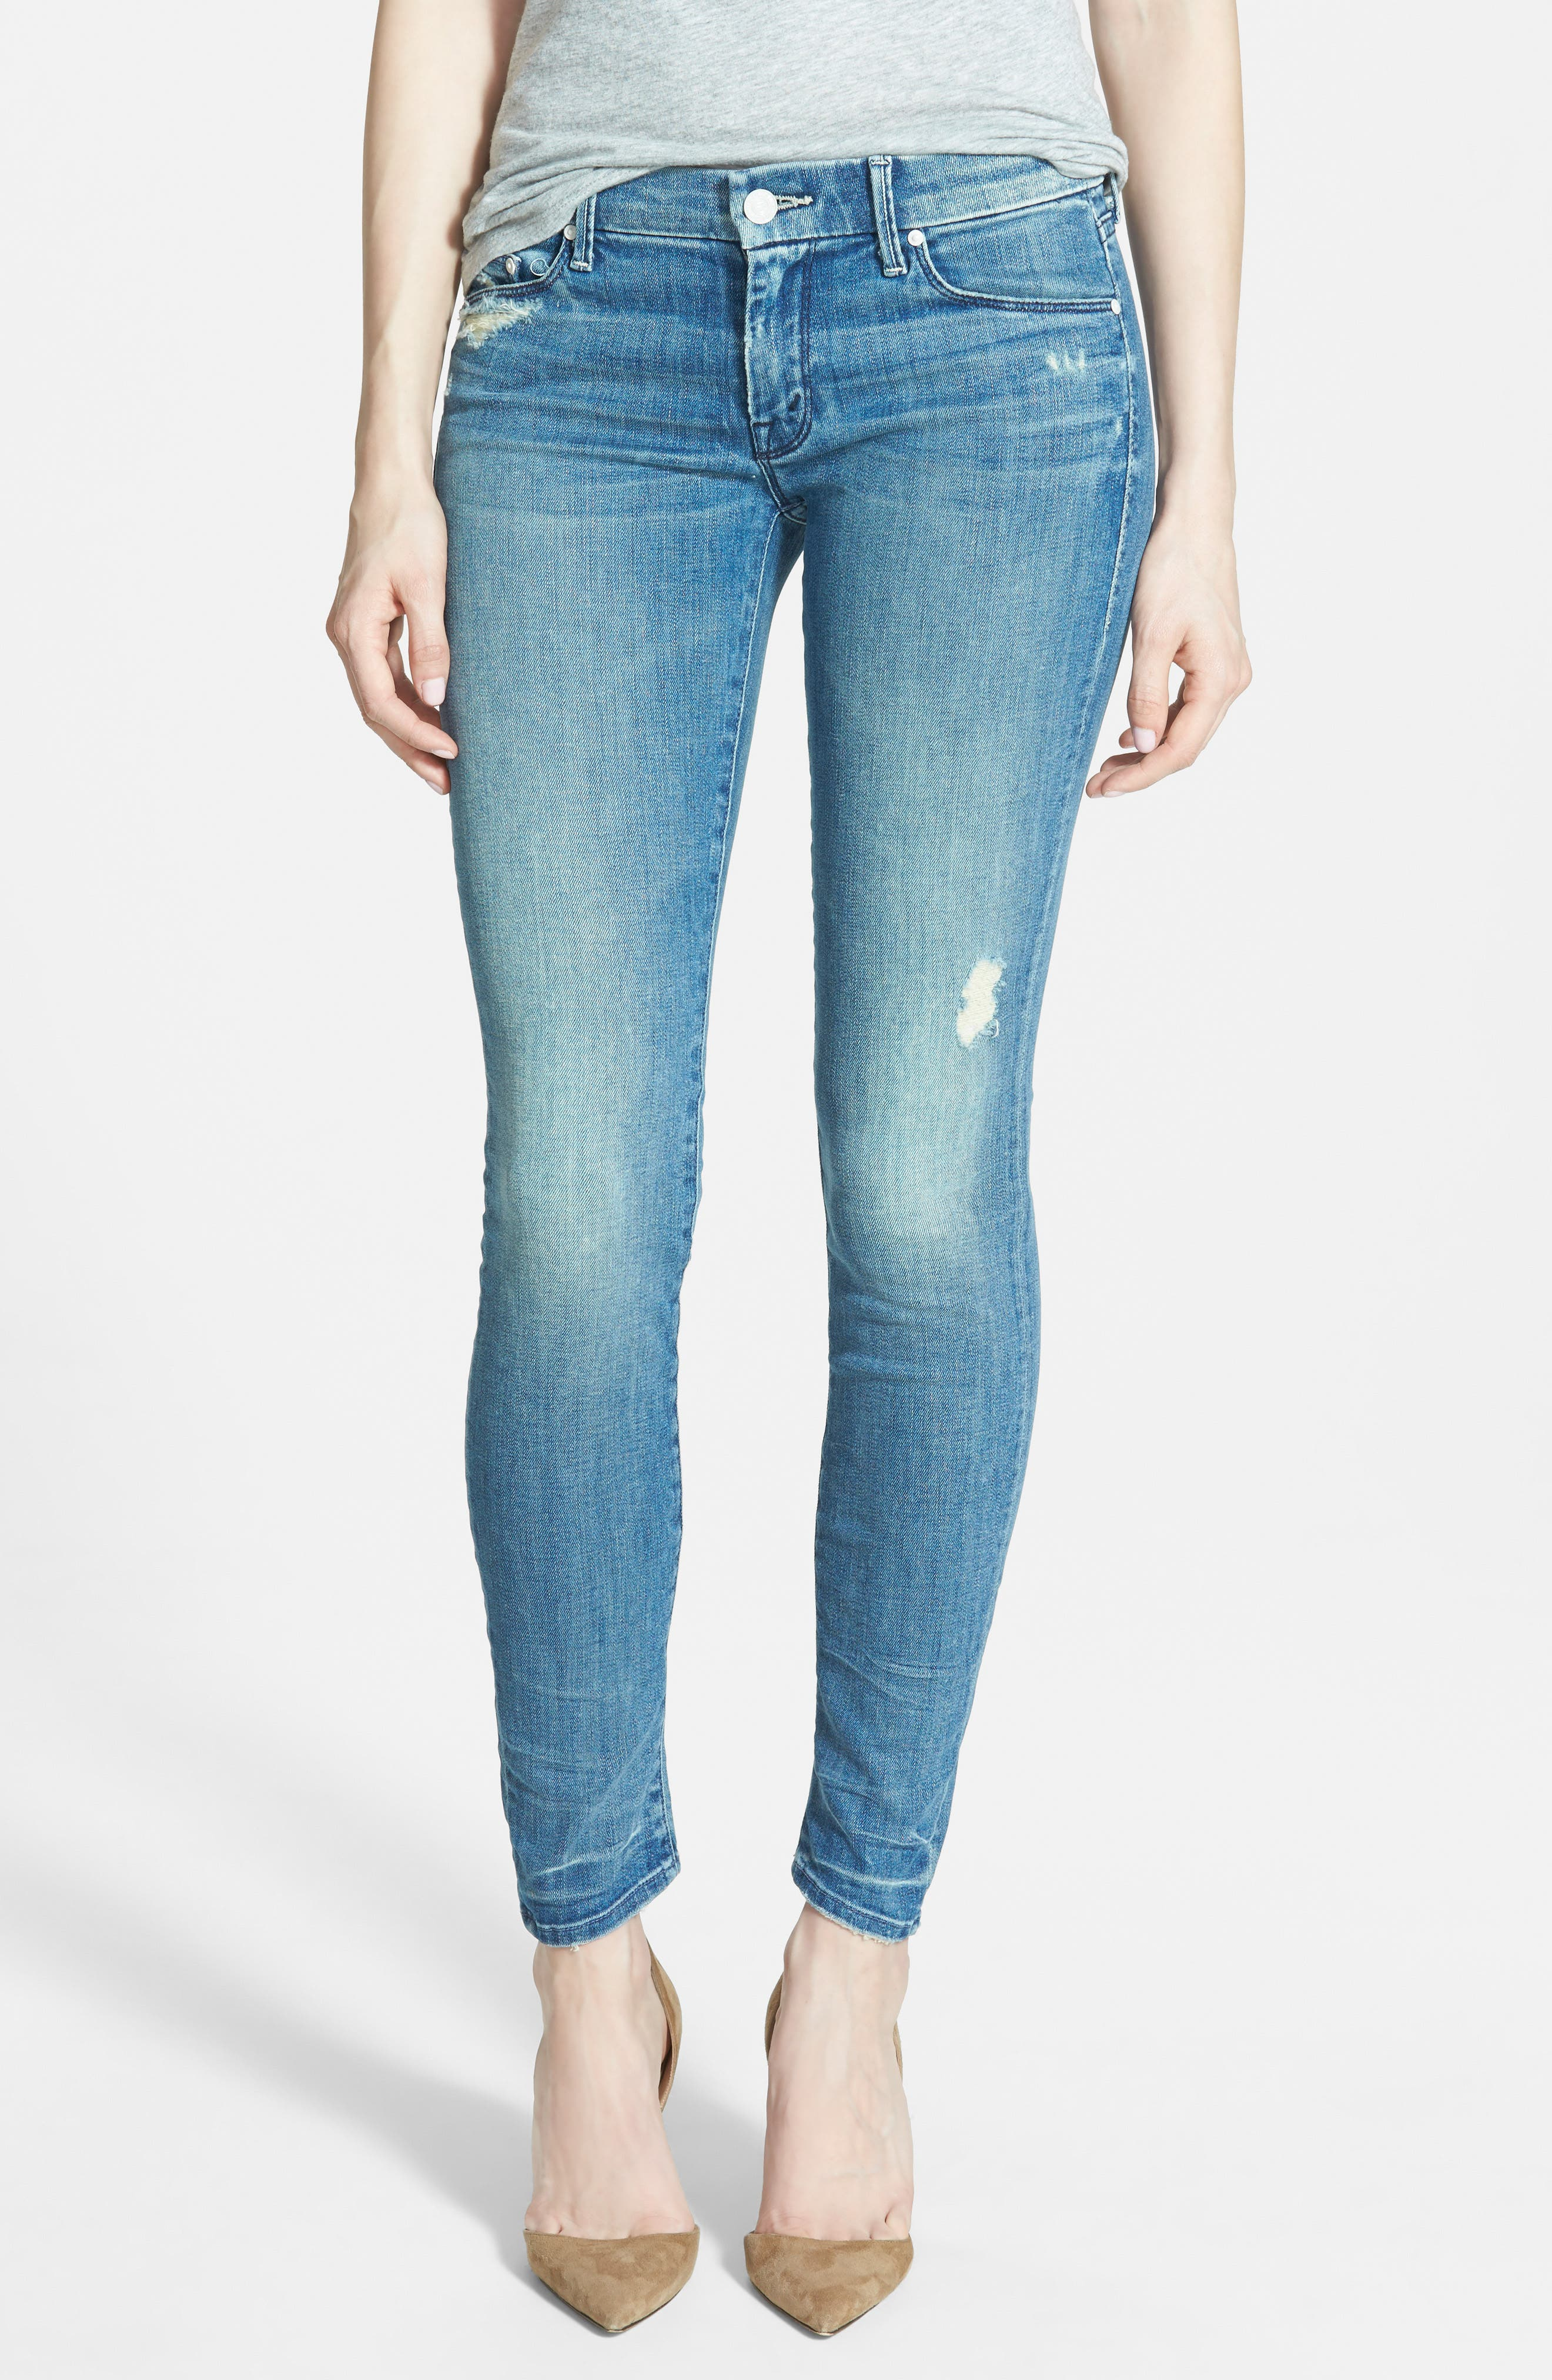 MOTHER, 'The Looker' Skinny Stretch Jeans, Main thumbnail 1, color, GRAFFITI GIRL